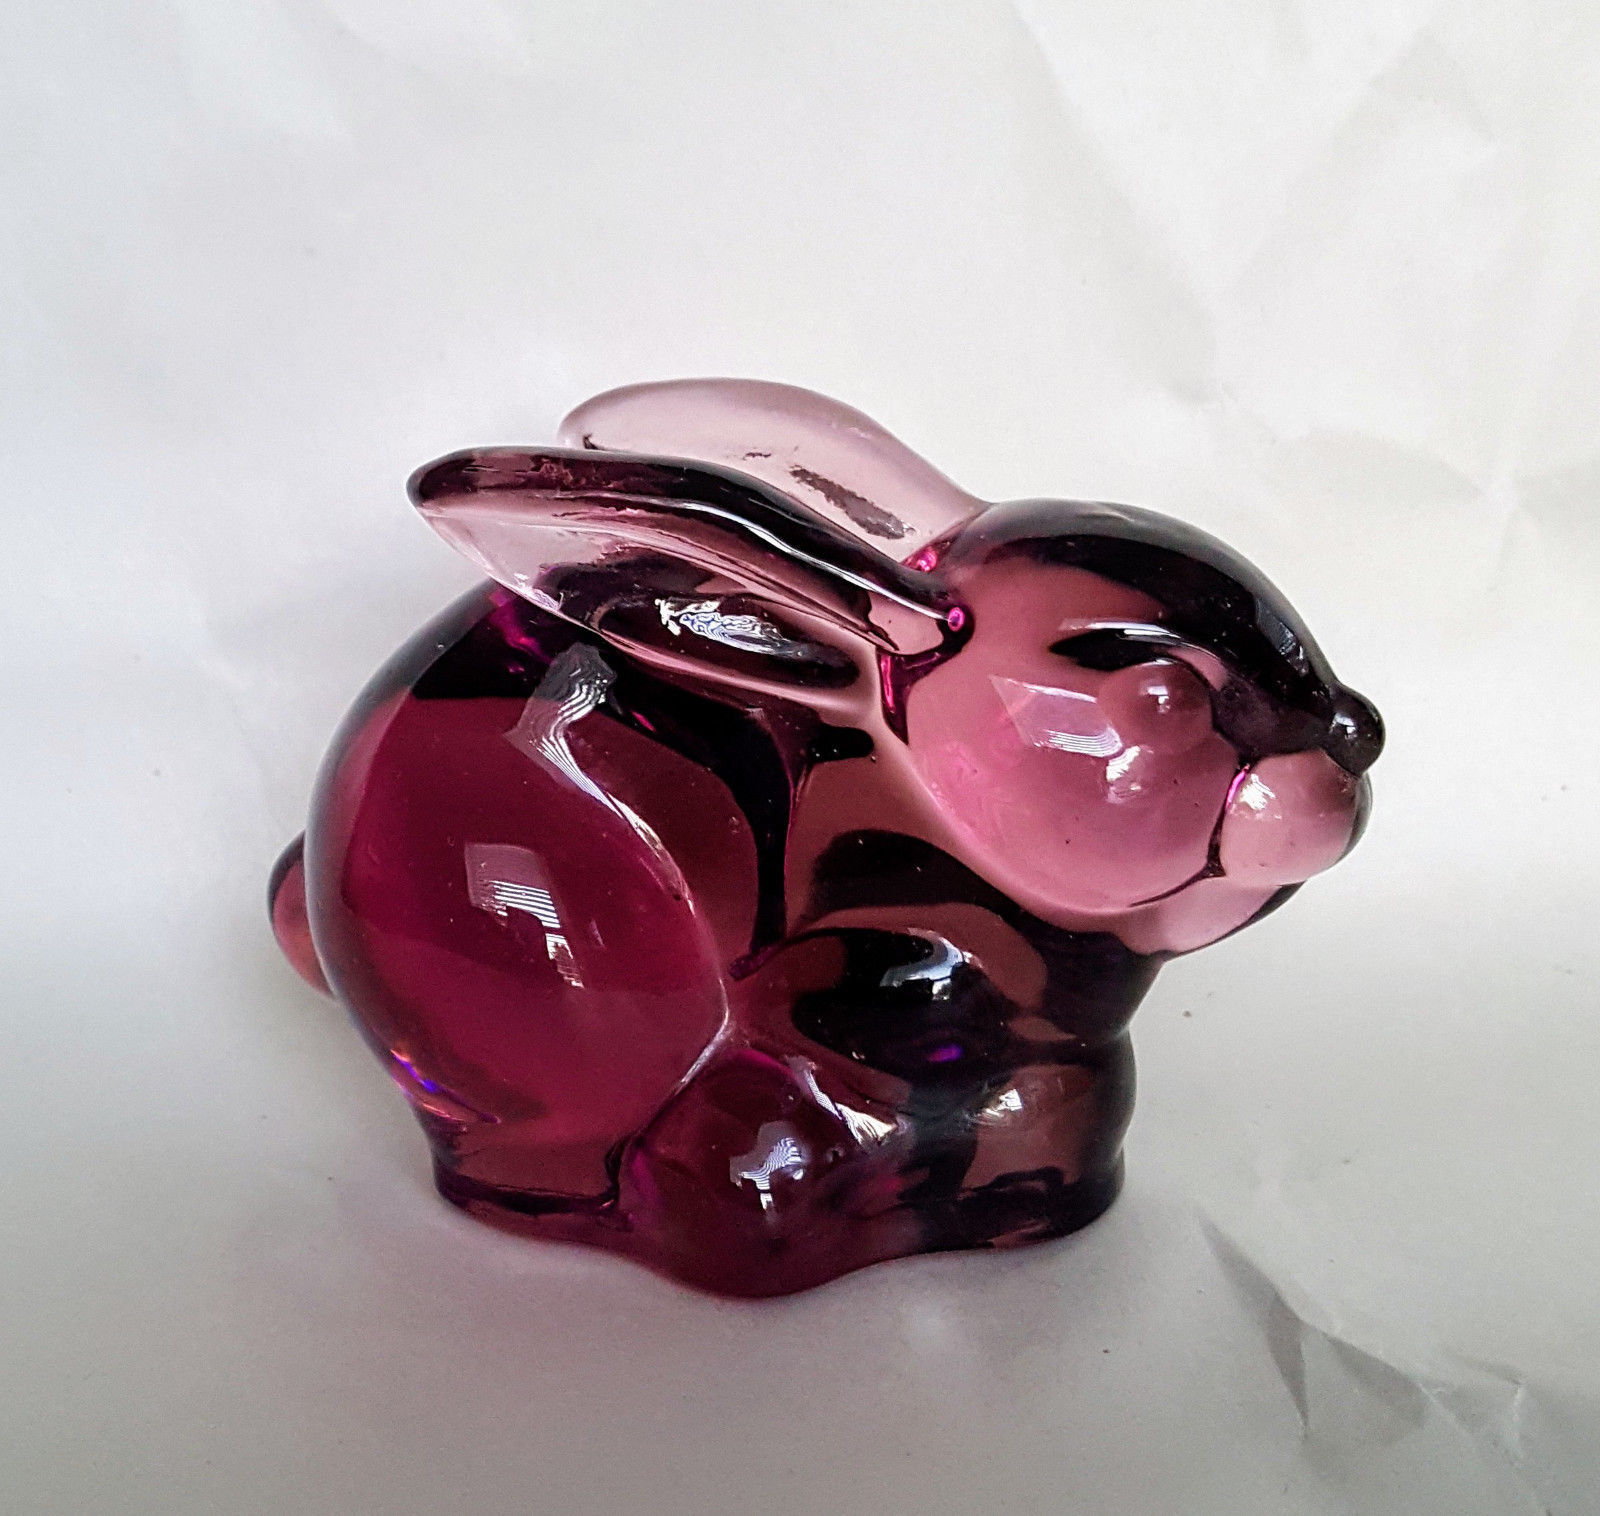 Silvestri Amethyst Glass Bunny Rabbit Sitting Figurine Animal Paperweight